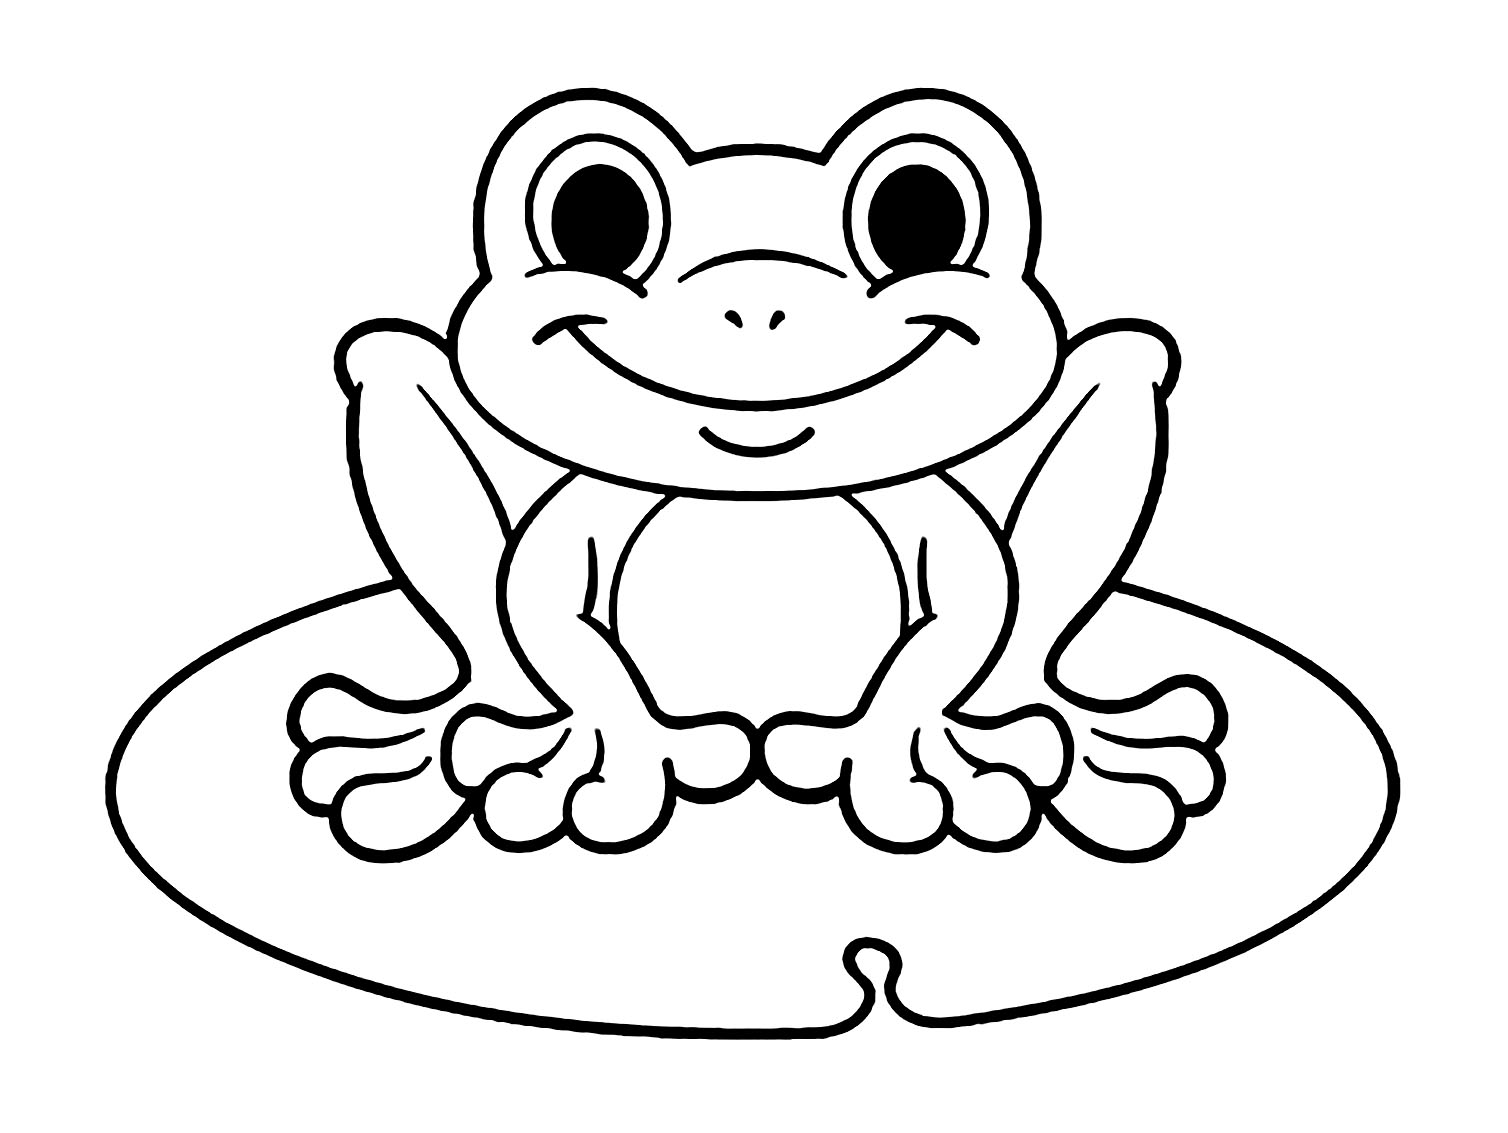 coloring image of a frog frog coloring page coloring page of frog coloring image a